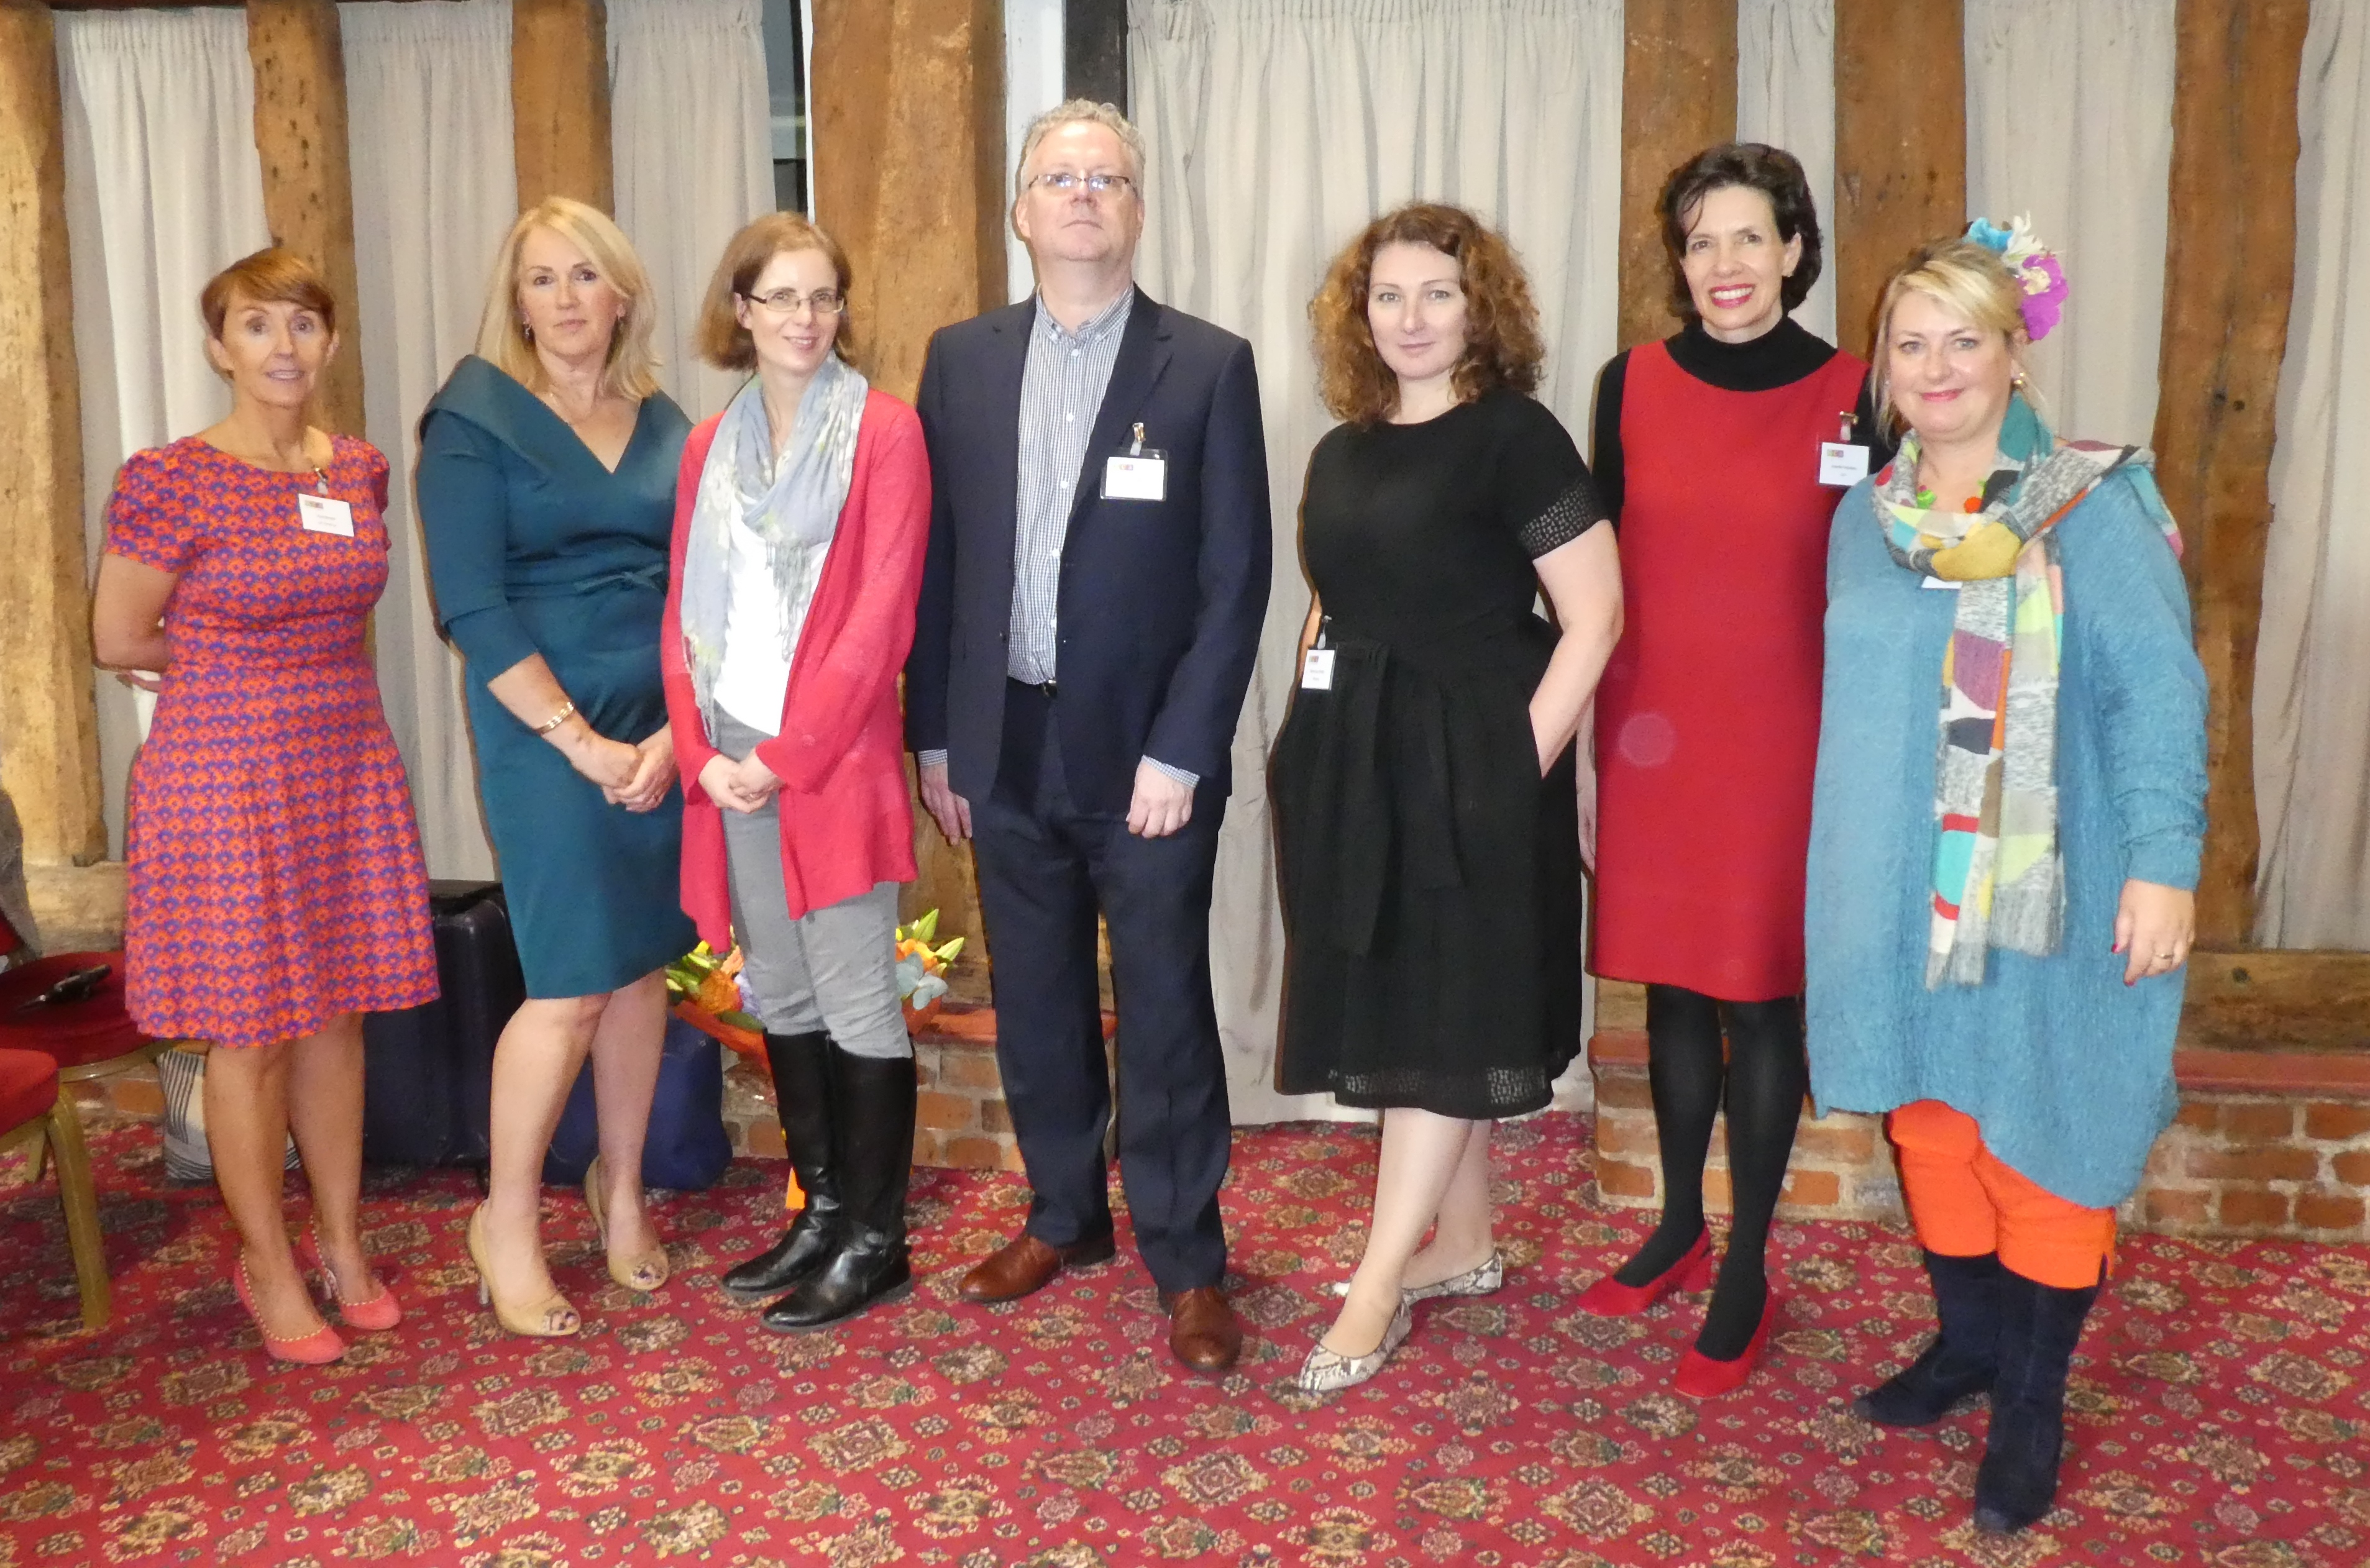 Above: UKG's Ceri Stirland (far left) at the GCA AGM with fellow speakers (2nd left-right) Karen Hubbard (Card Factory), Sue Morrish (The Eco-friendly Card Co), Geoff Sanderson (Moonpig), Sarah-Jane Porter (Moonpig), Amanda Fergusson (GCA) and Jakki Brown (PG/GCA).